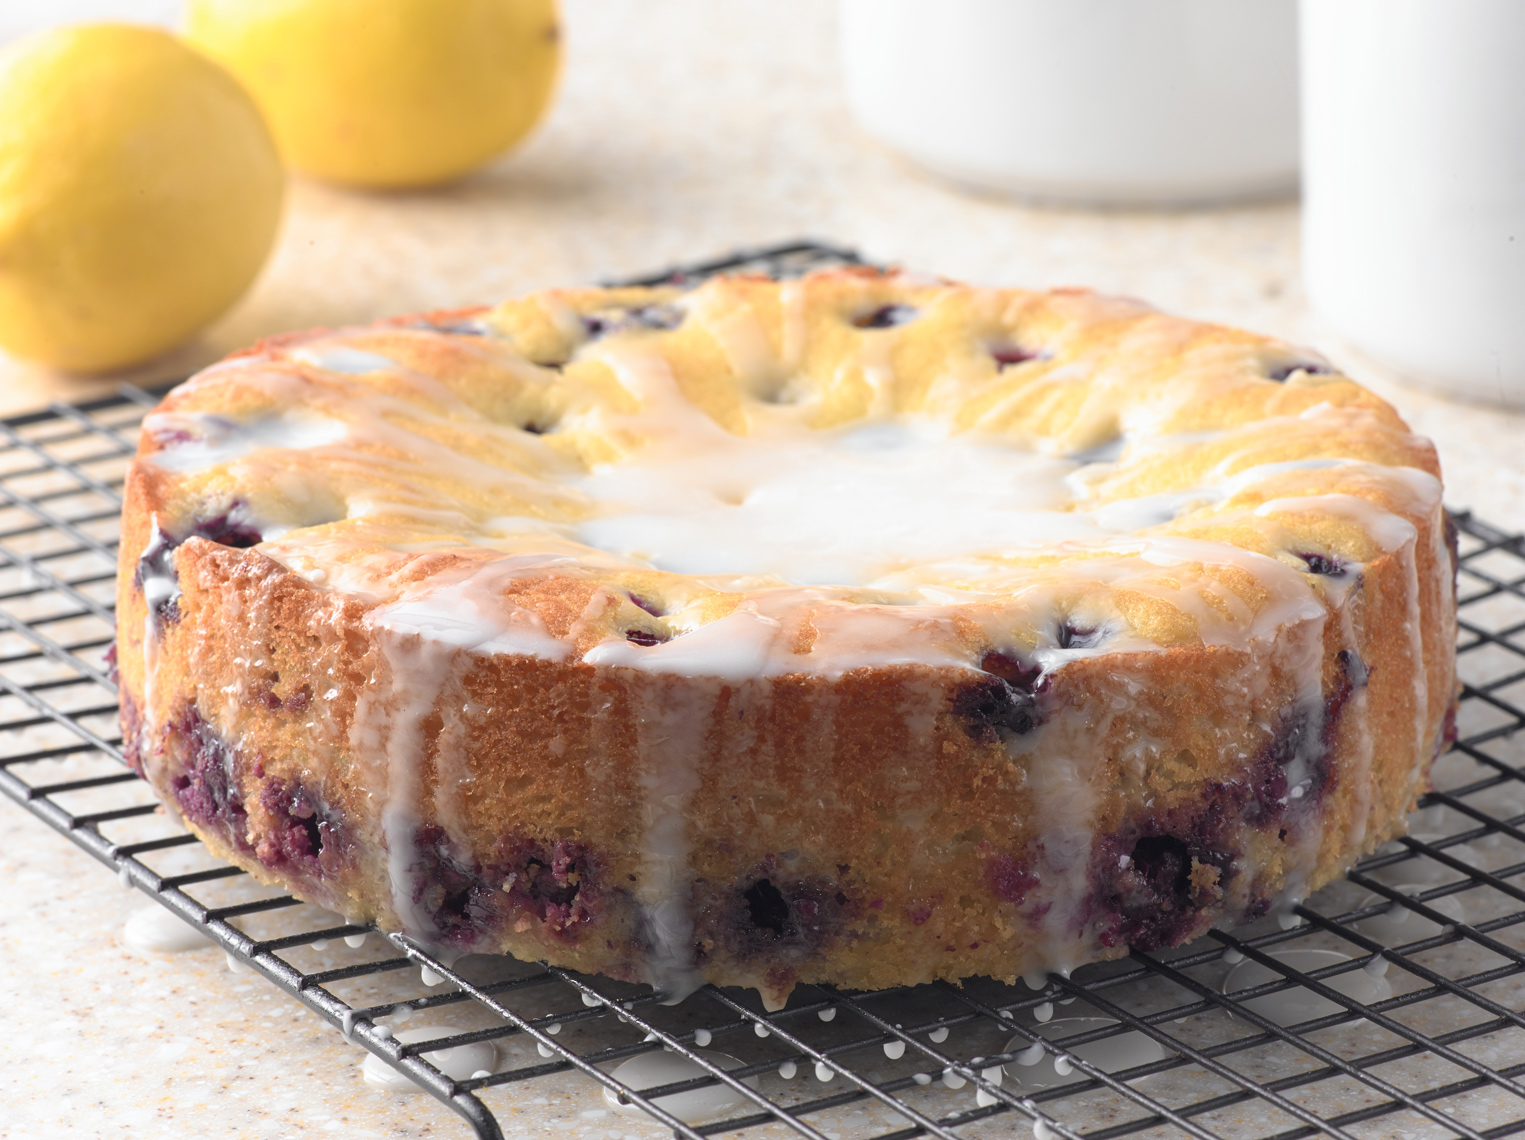 3382LemonBlueberryCake0504UPLOAD